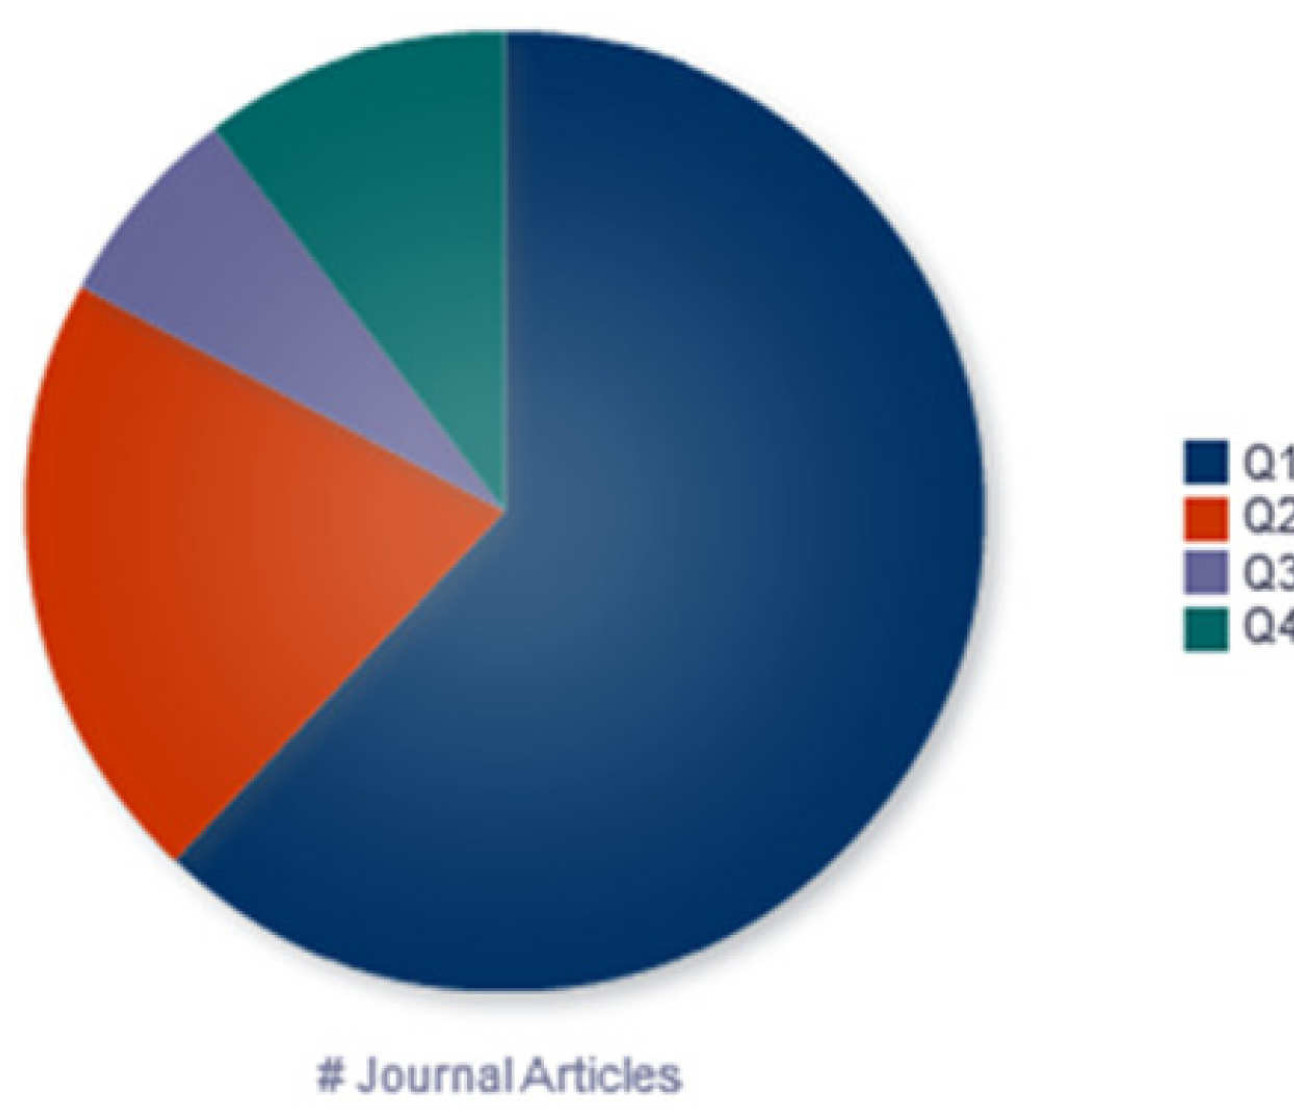 Pie chart showing outputs recently claimed by Journal Subject Category Quartile